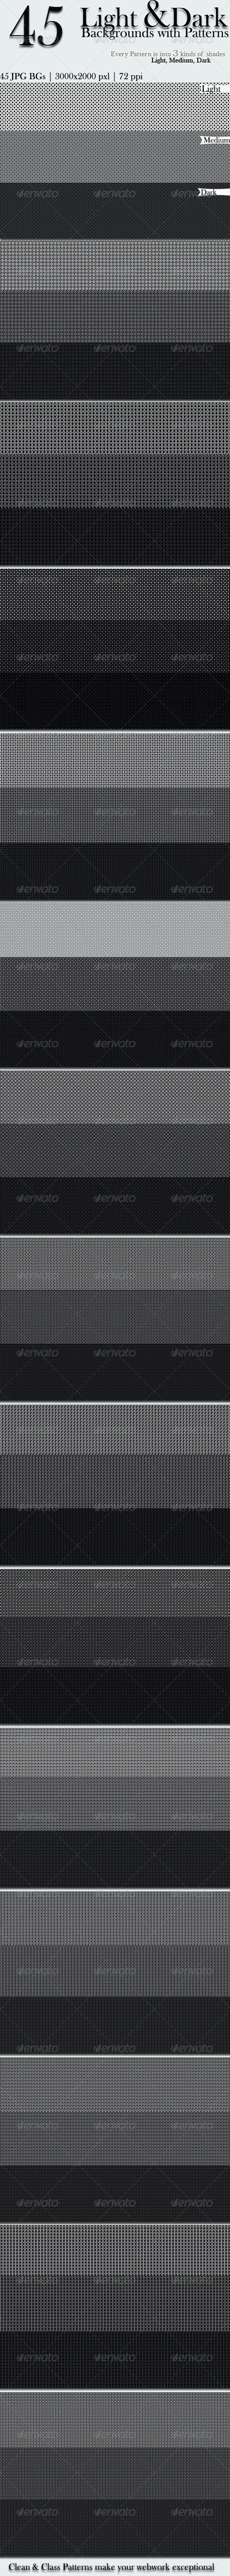 45 Light & Dark Backgrounds with Patterns - Patterns Backgrounds